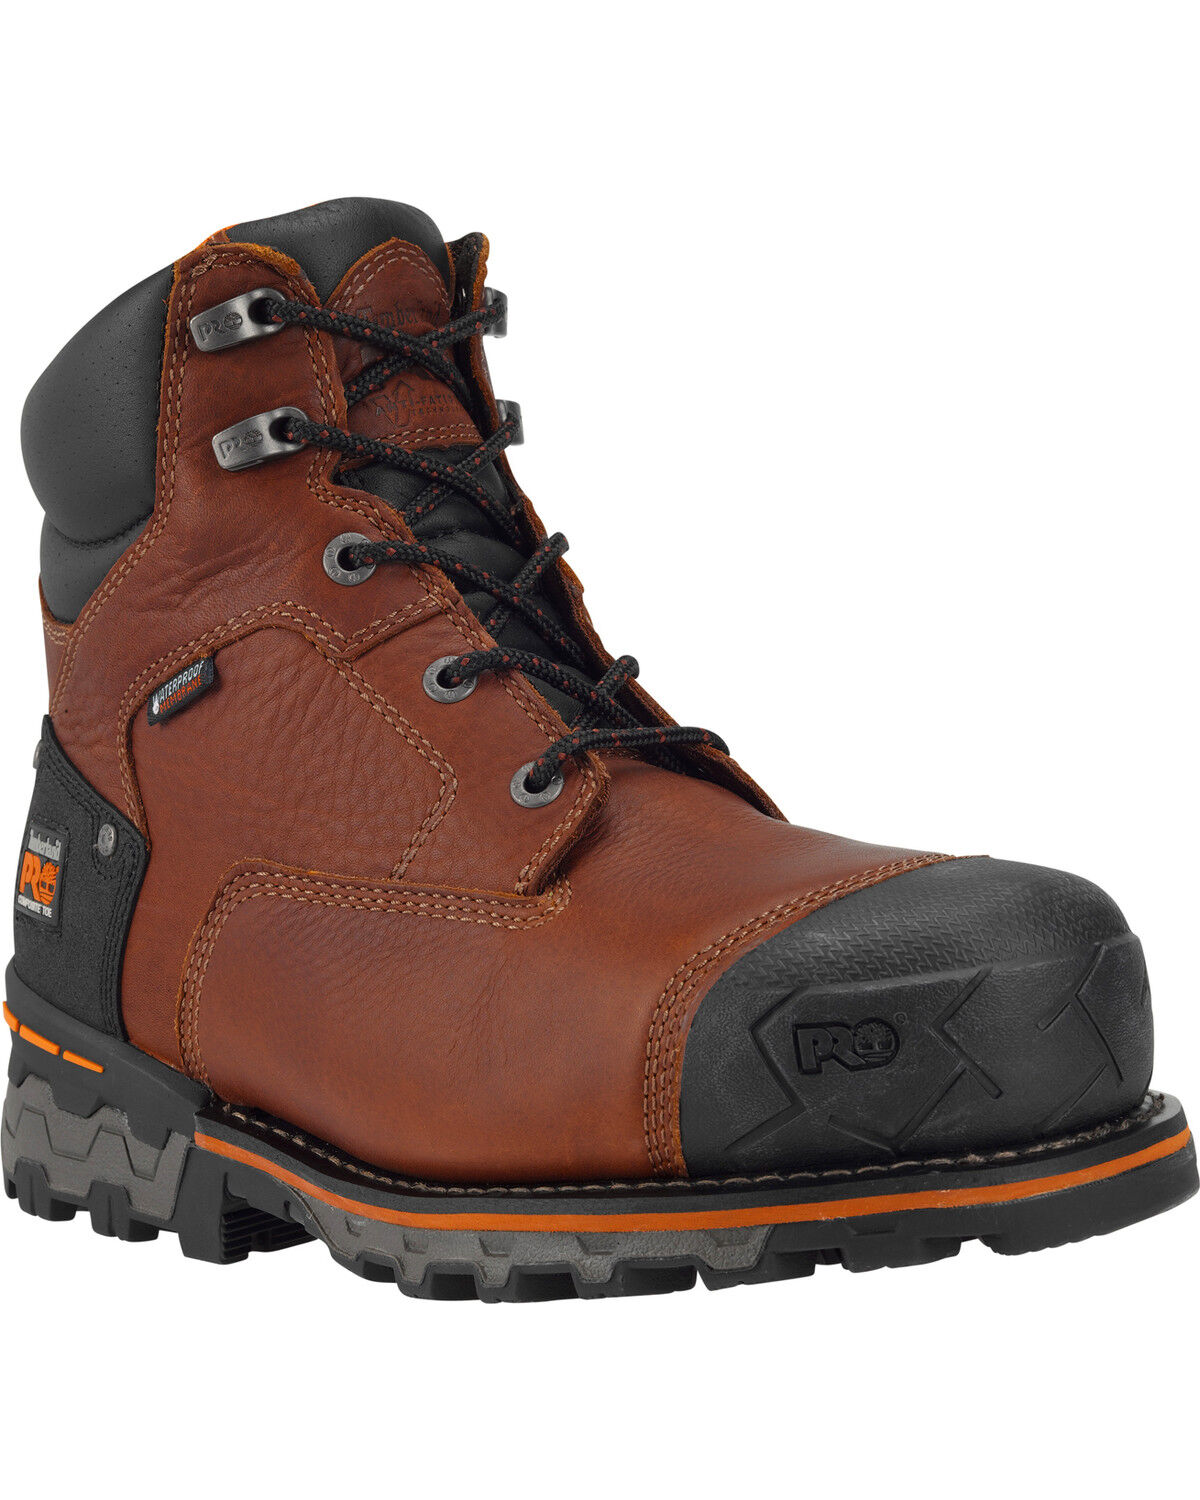 Timberland Pro Work Boots - Boot Barn